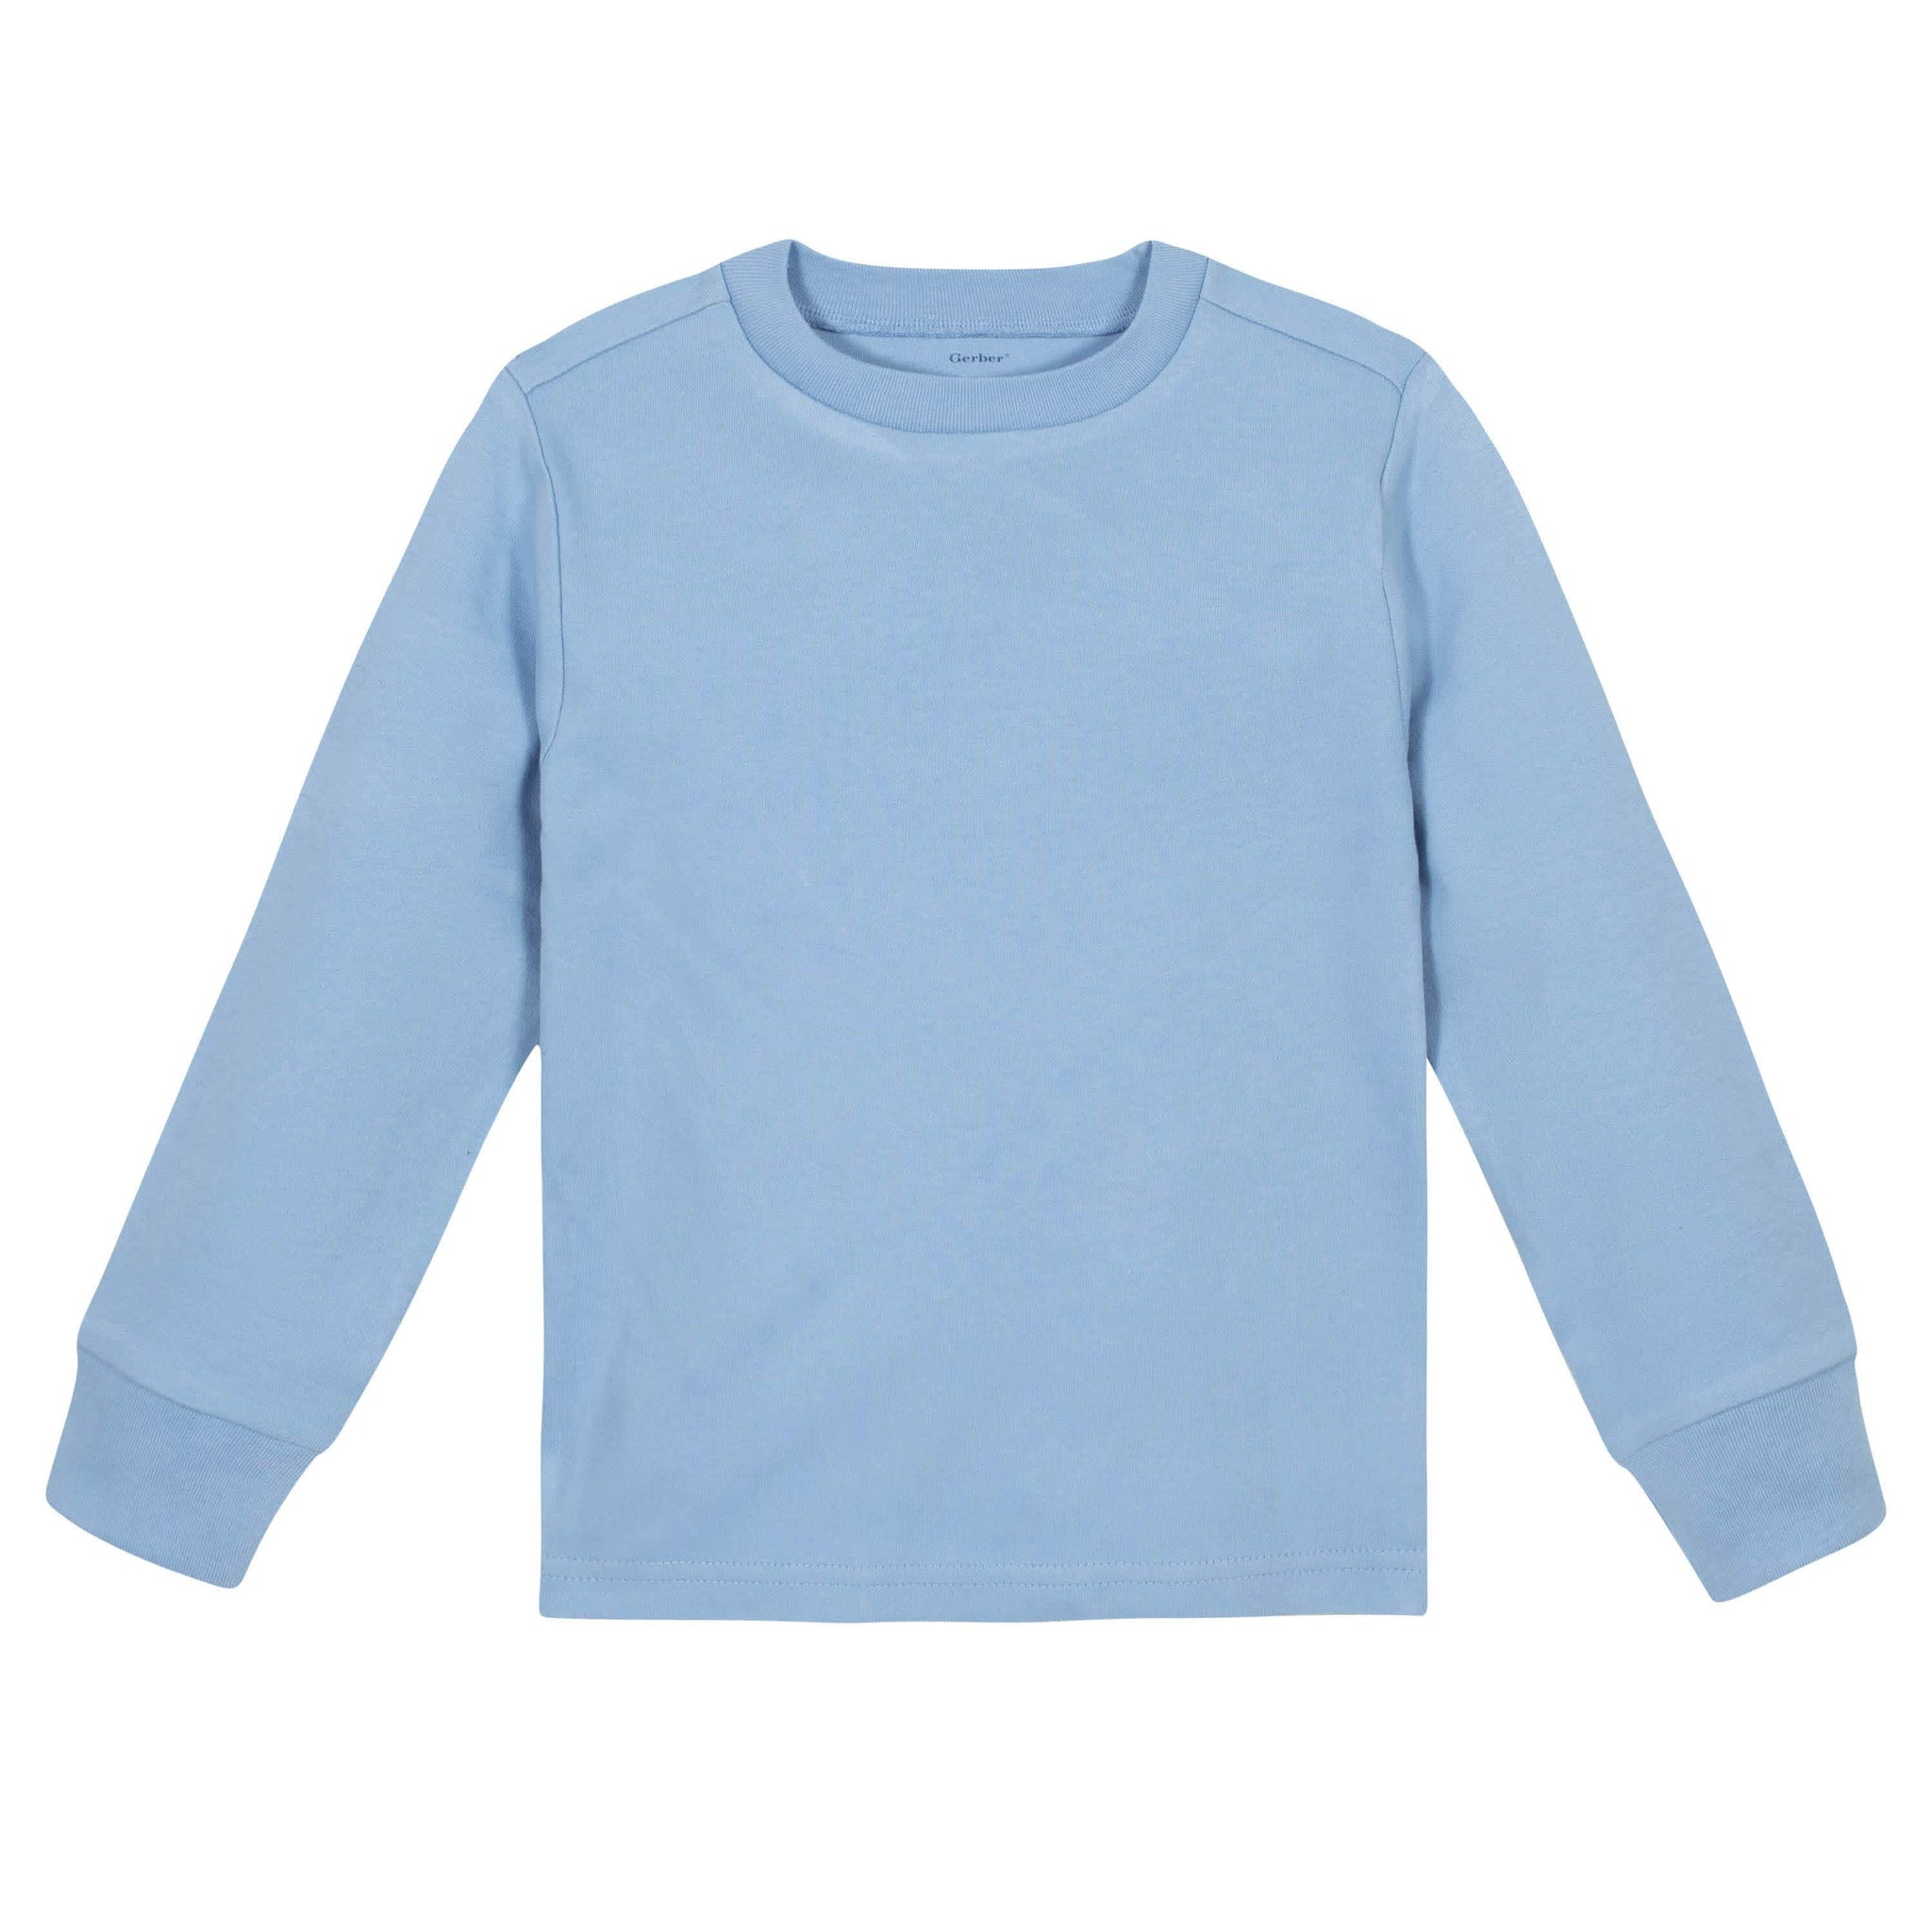 Gerber® Premium Light Blue Long Sleeve Tee Shirt - 10 Colors Available